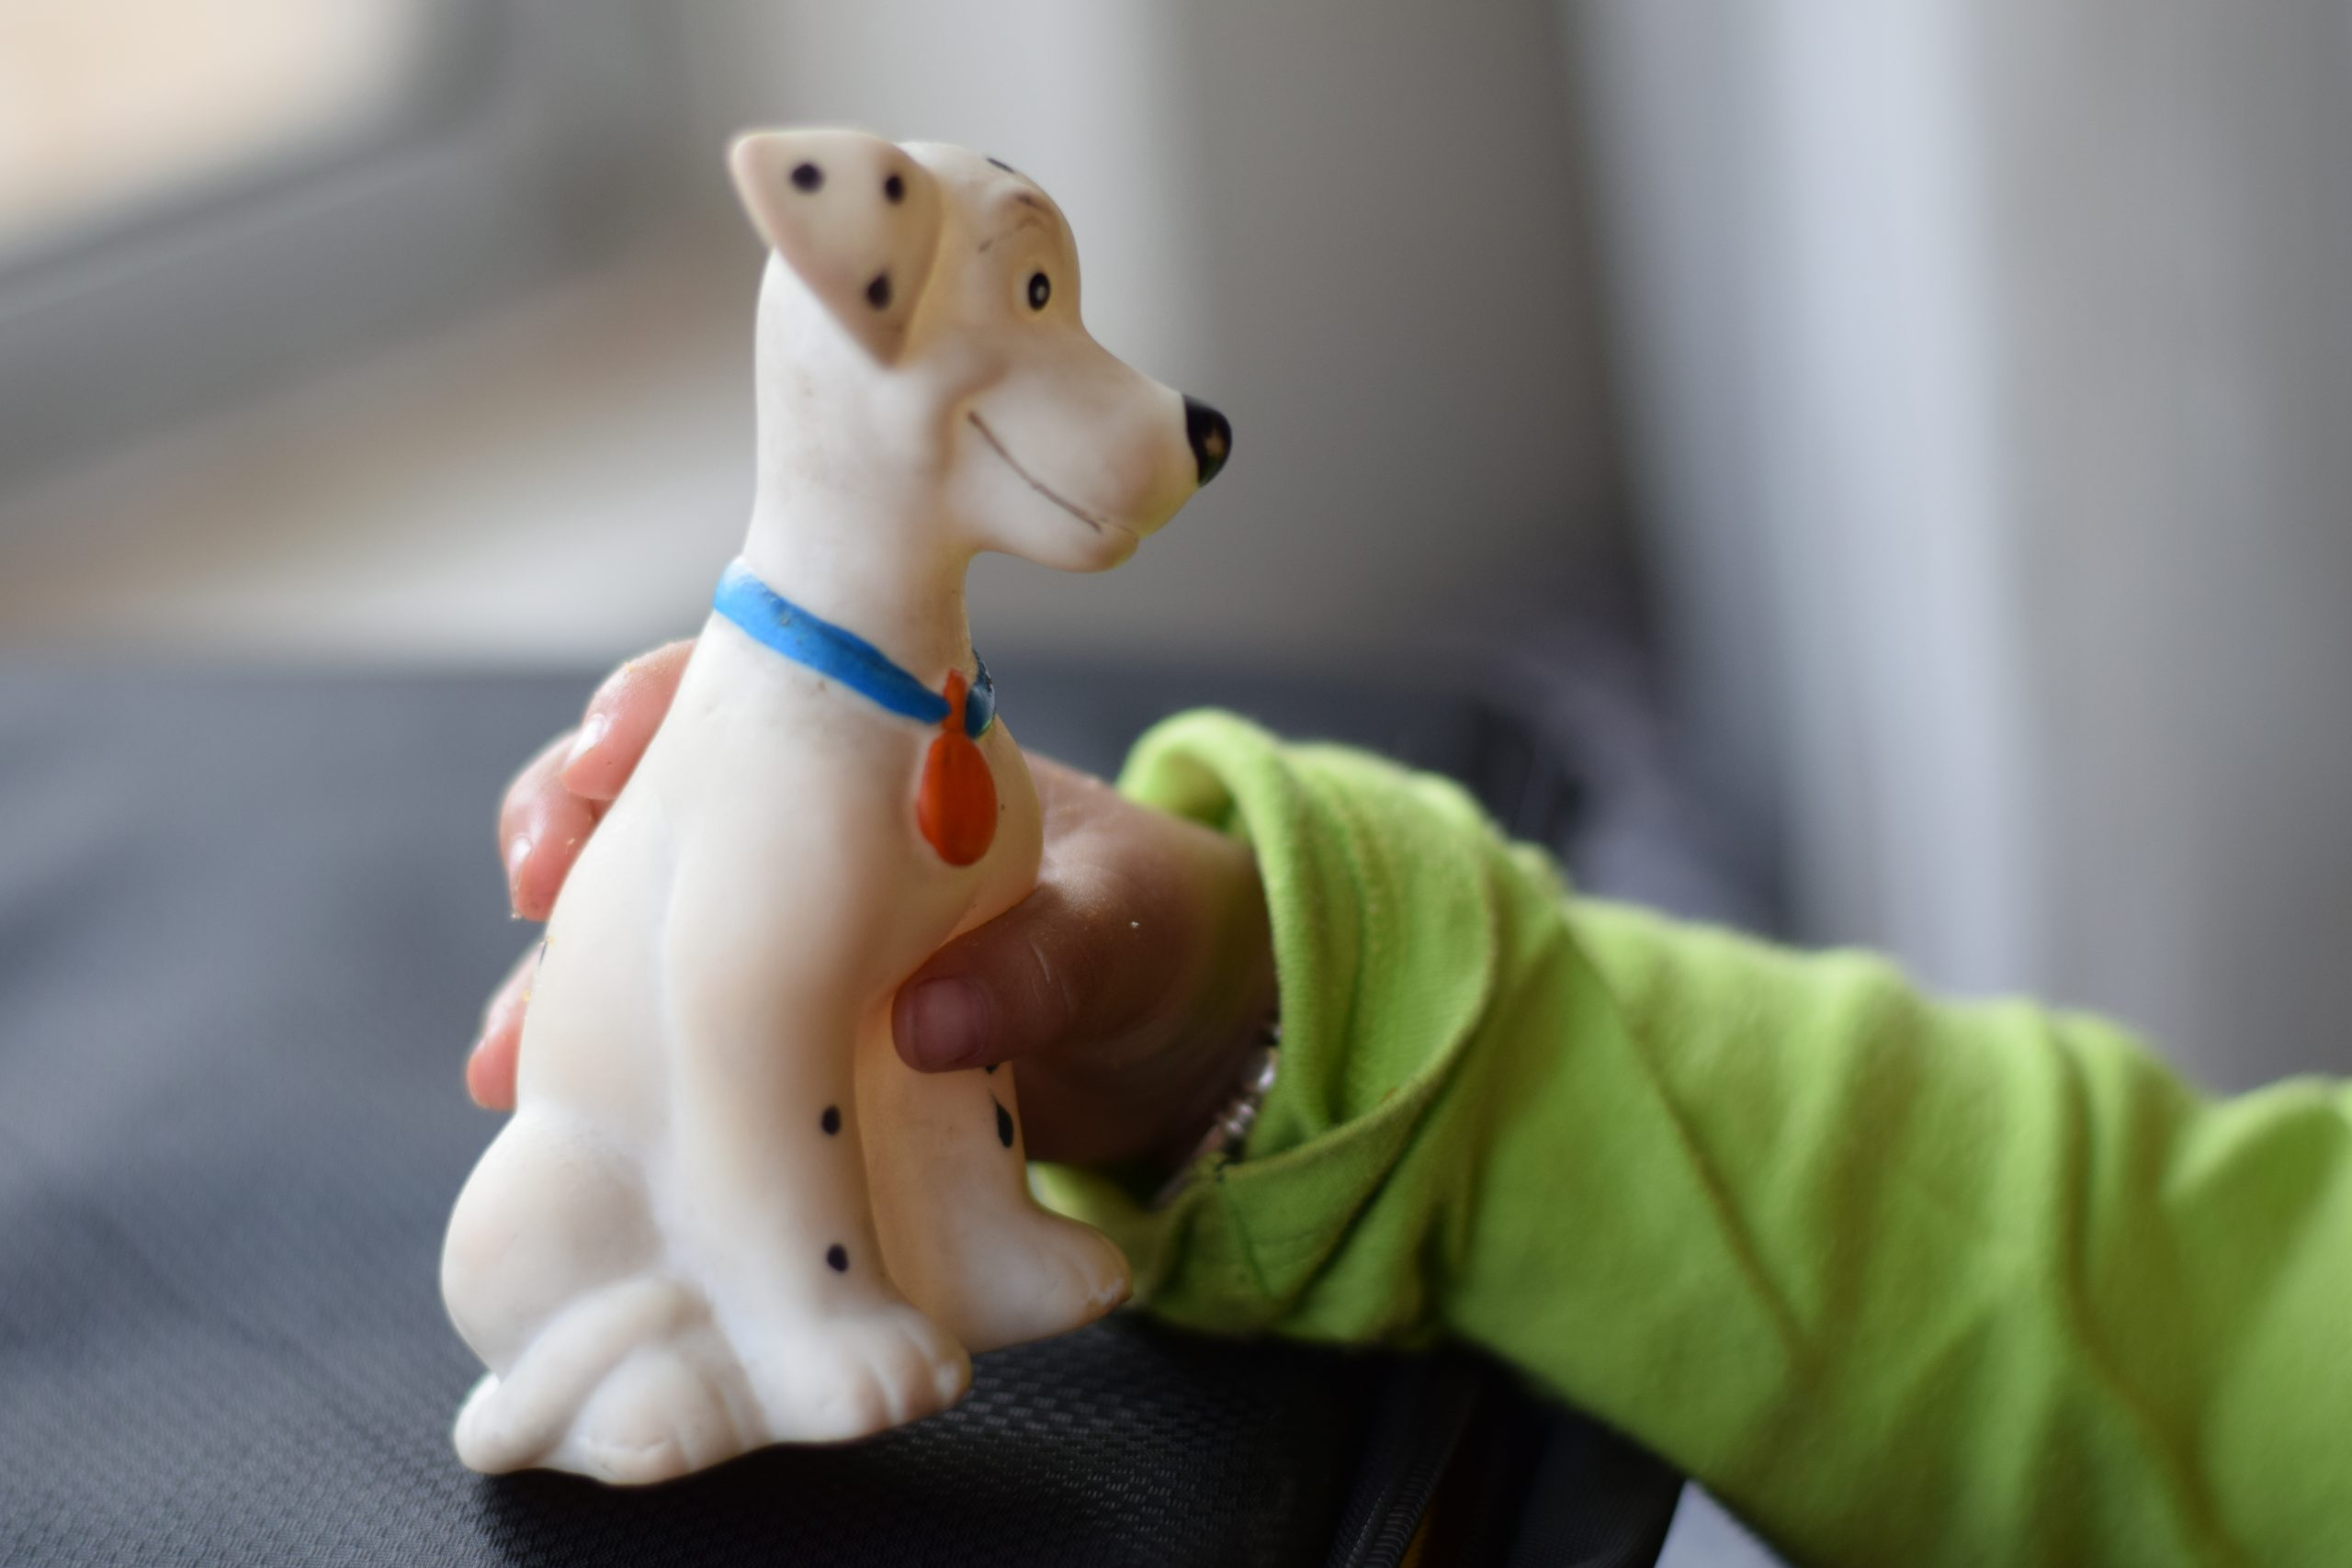 Child Hand Holding a Dog Toy